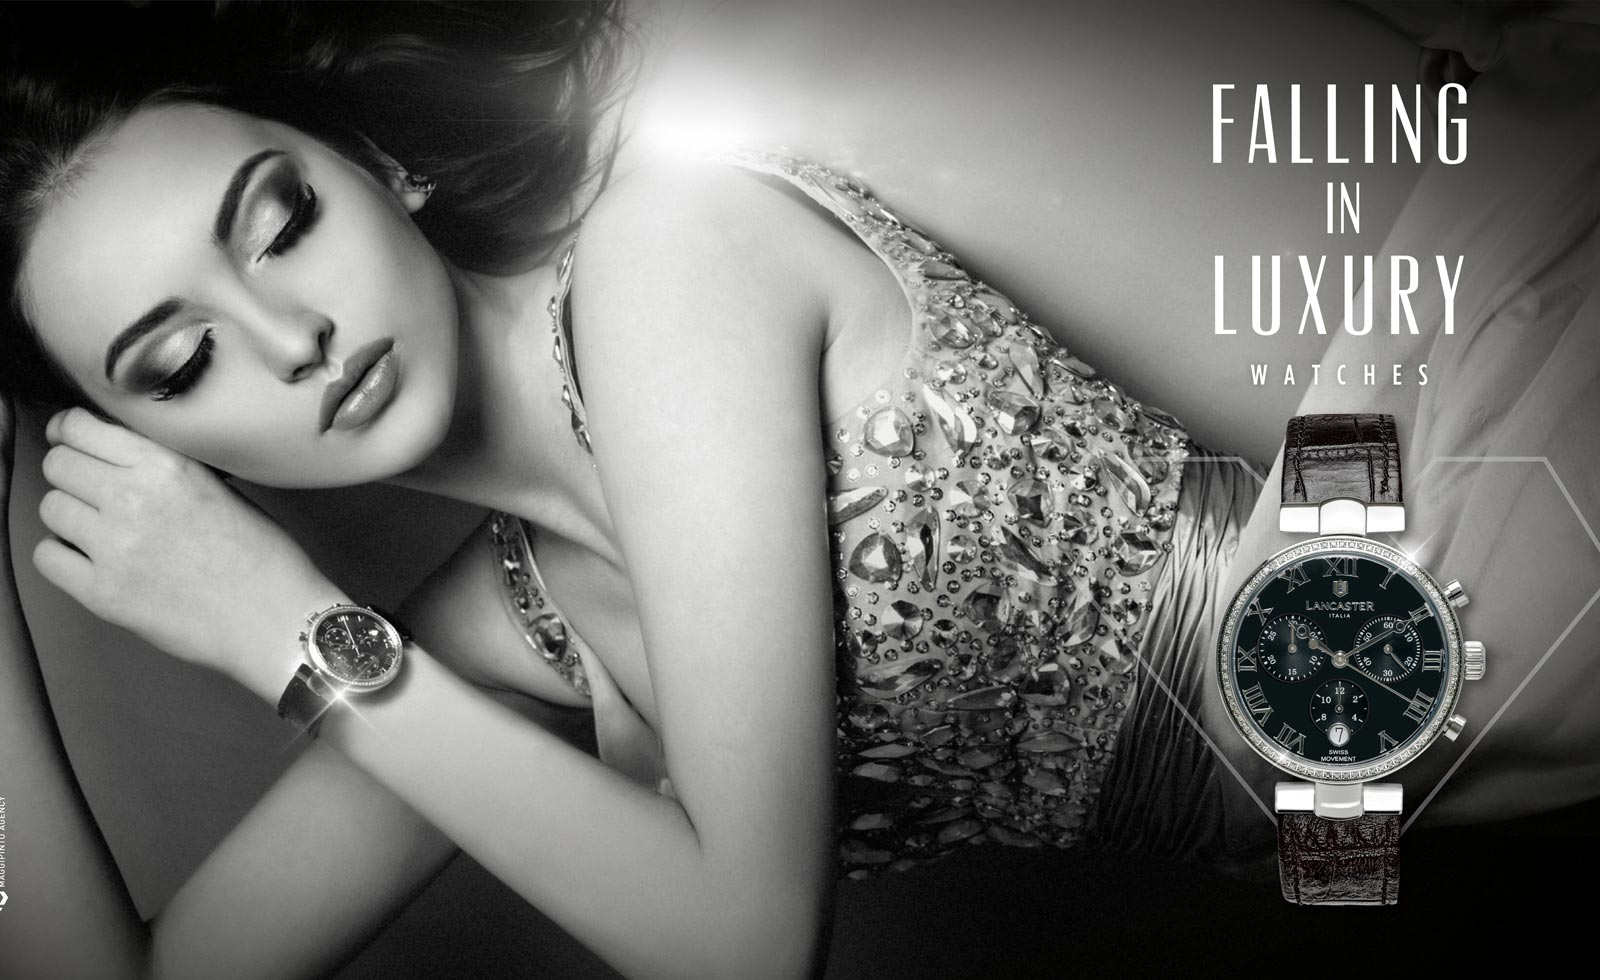 lancaster watches jewellery advertising campaign